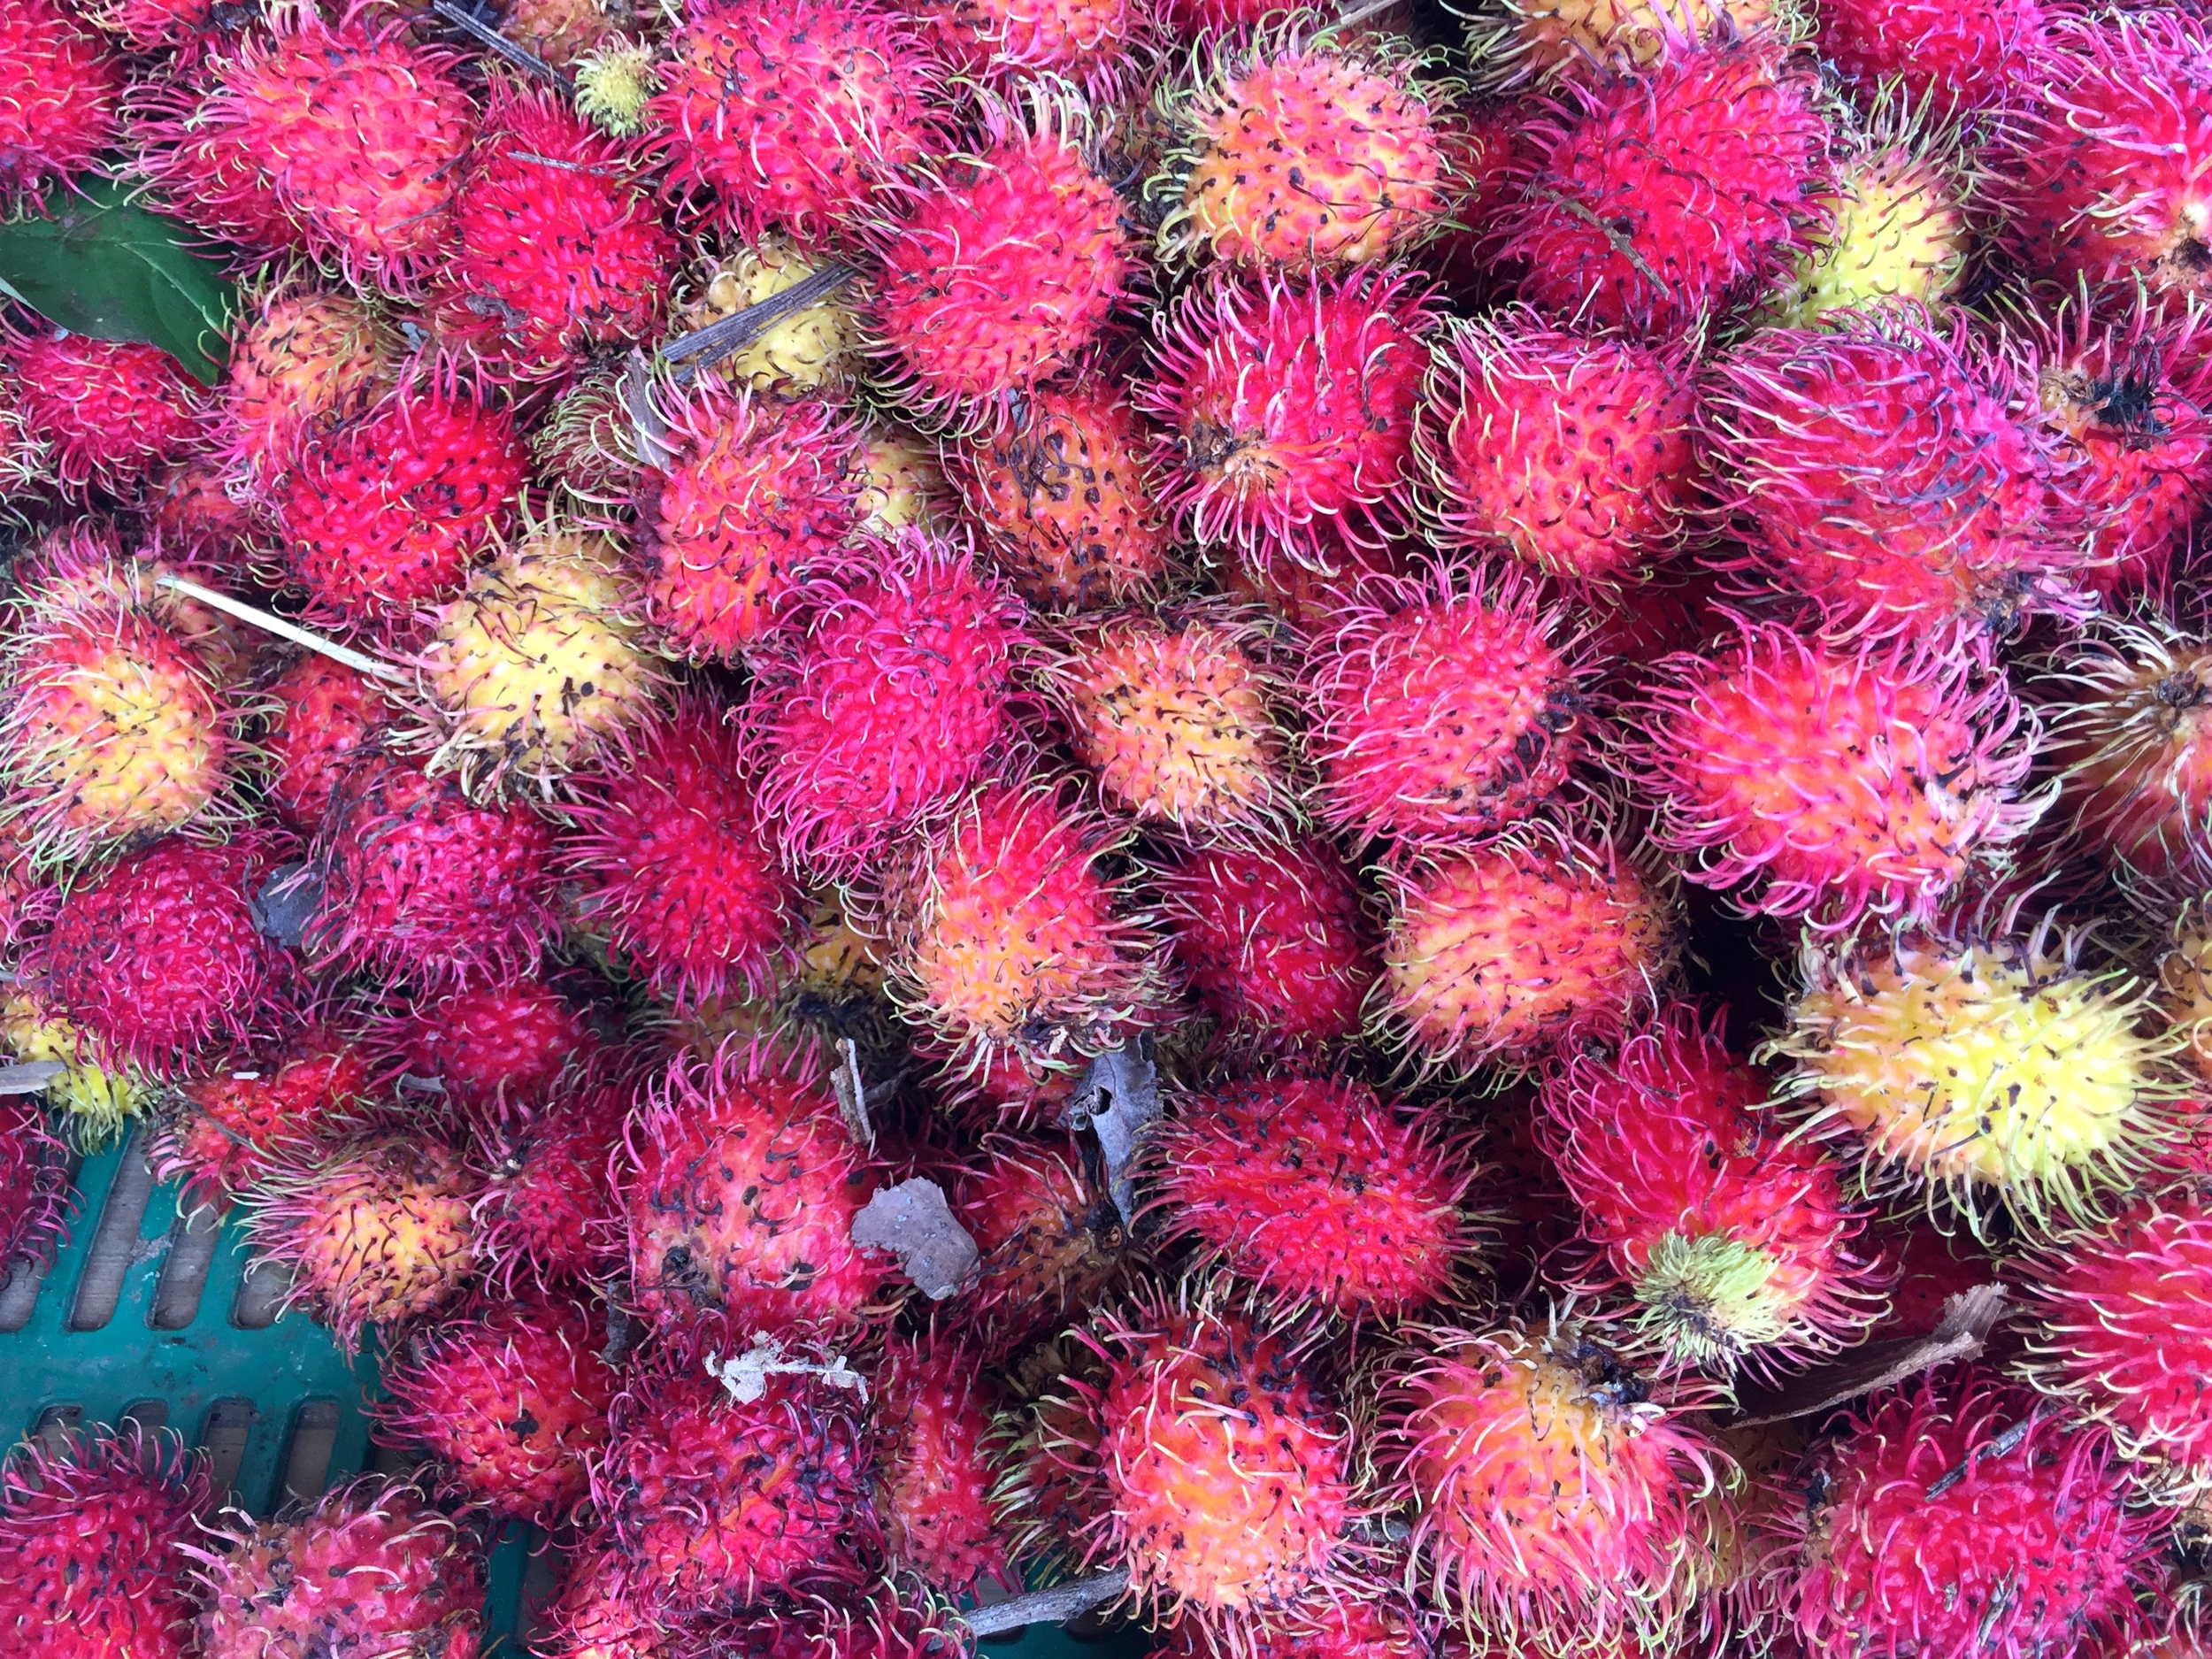 Fresh lychee fruit at a roadside fruit stand.